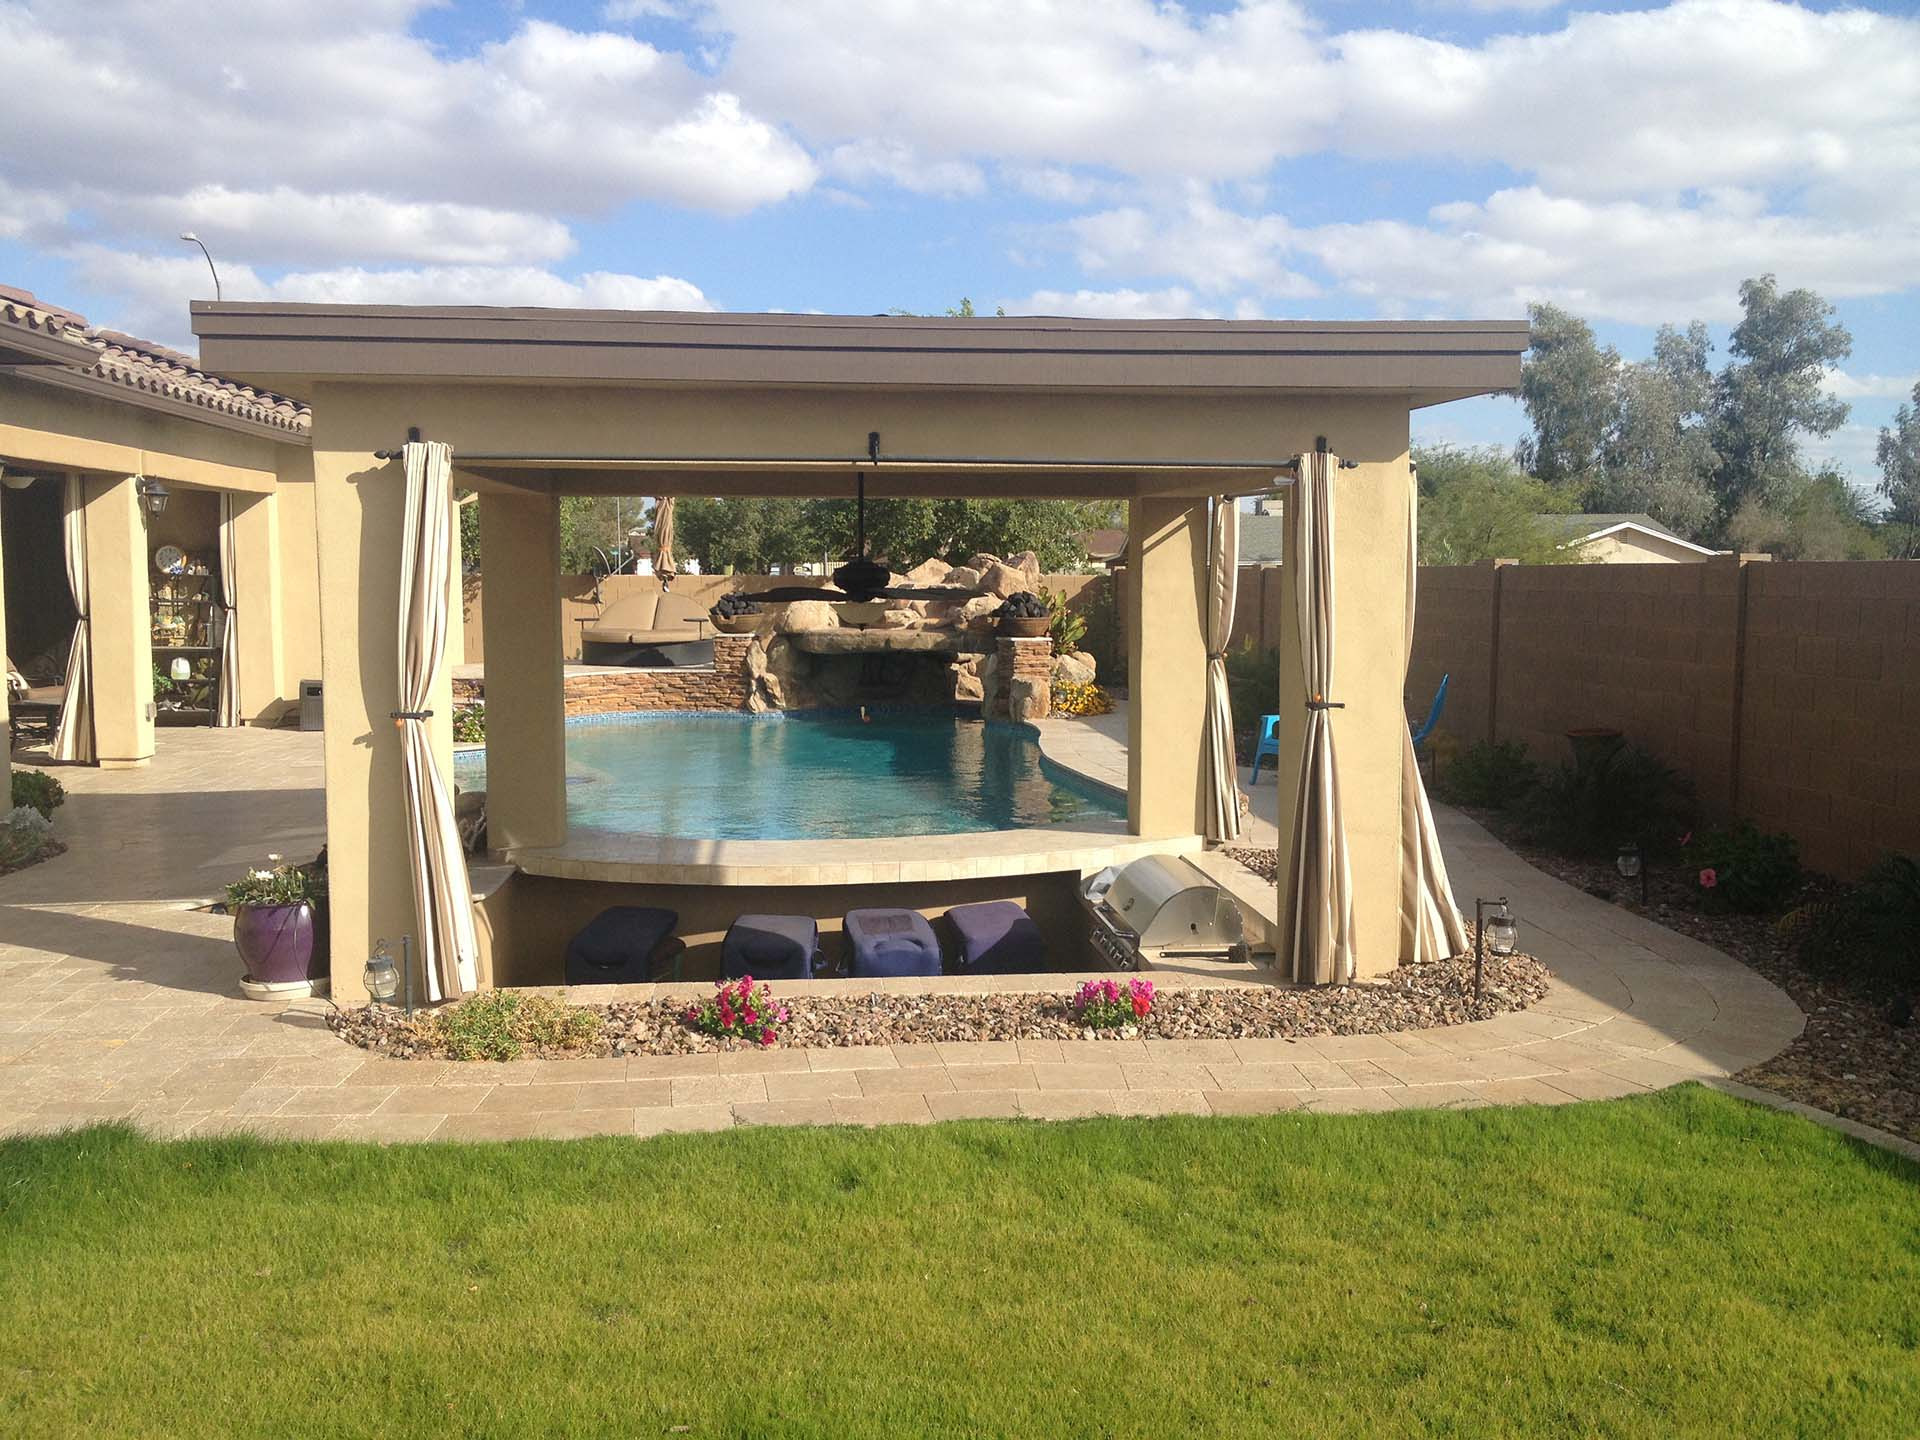 Creating A Functional And Fun Backyard Space With AZ Pool Builders